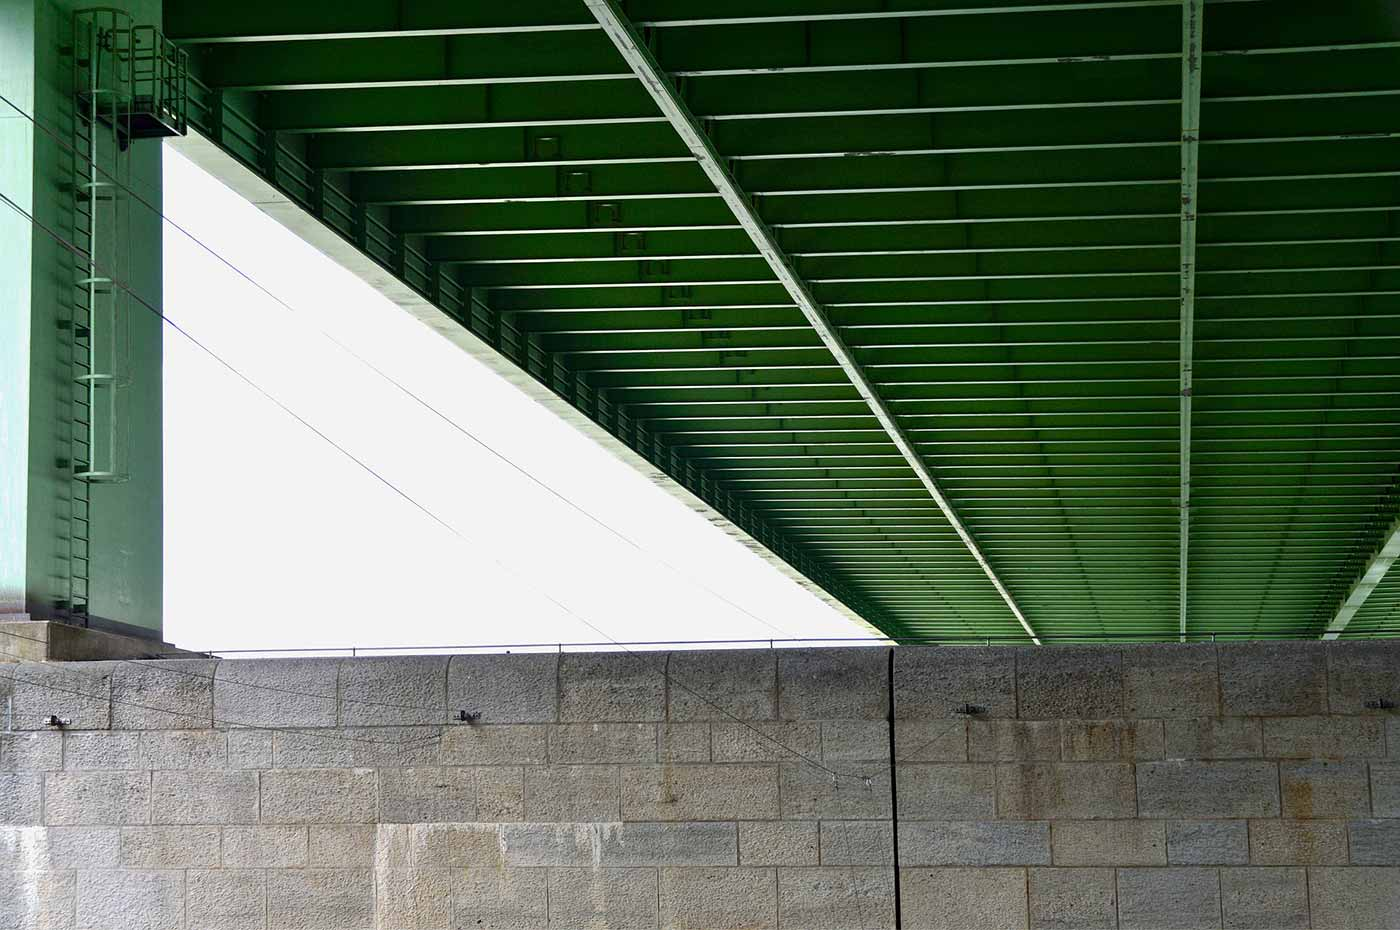 Bridge beam